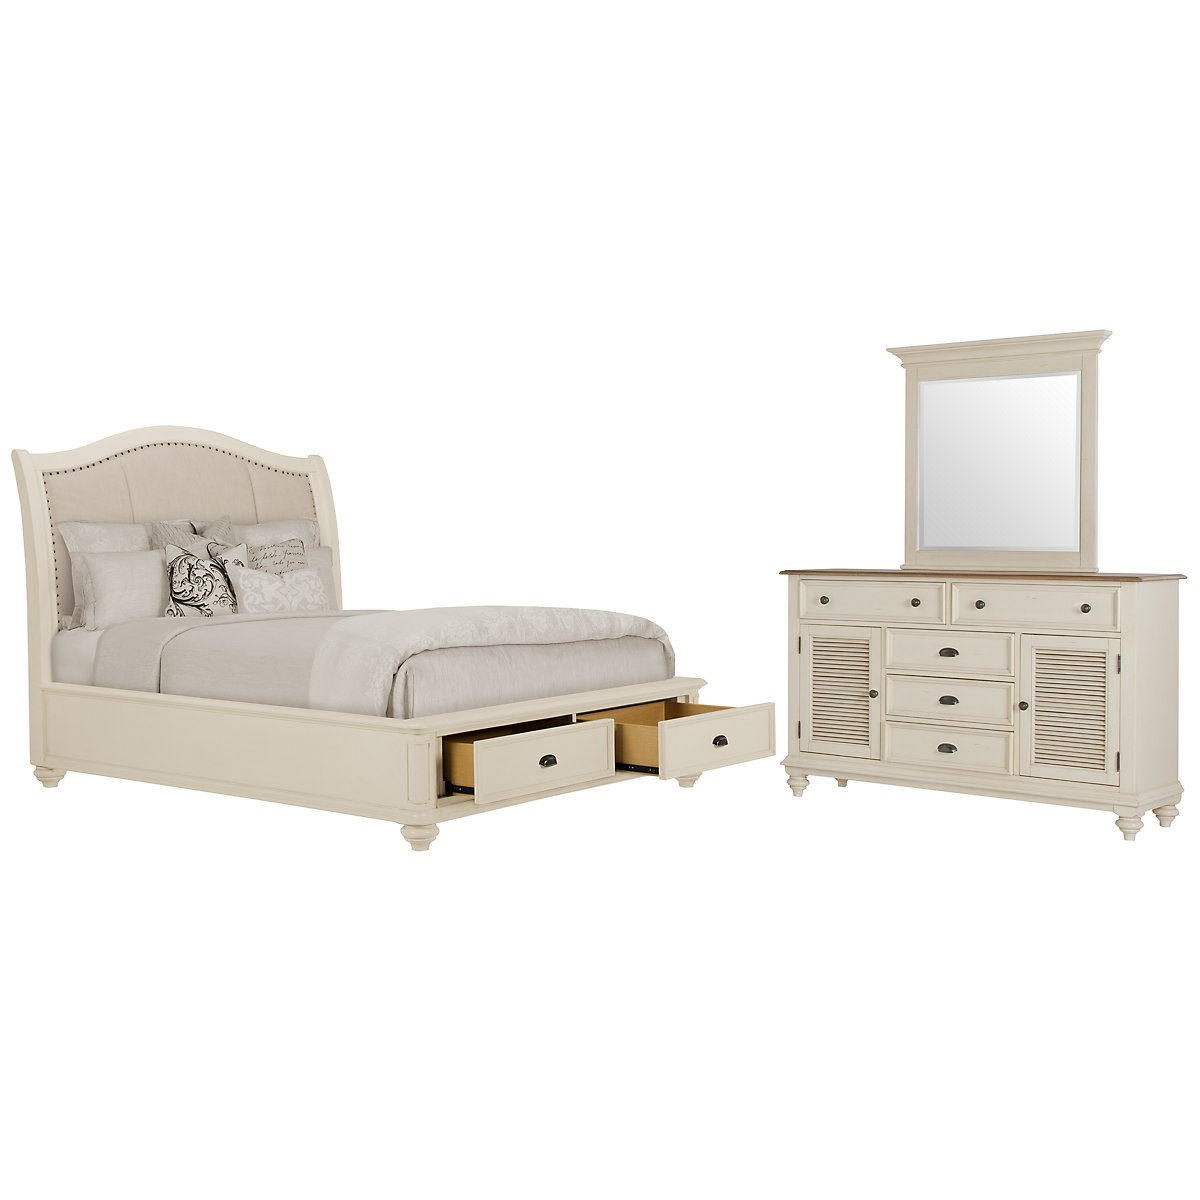 City furniture coventry white upholstered platform for White bedroom set with storage